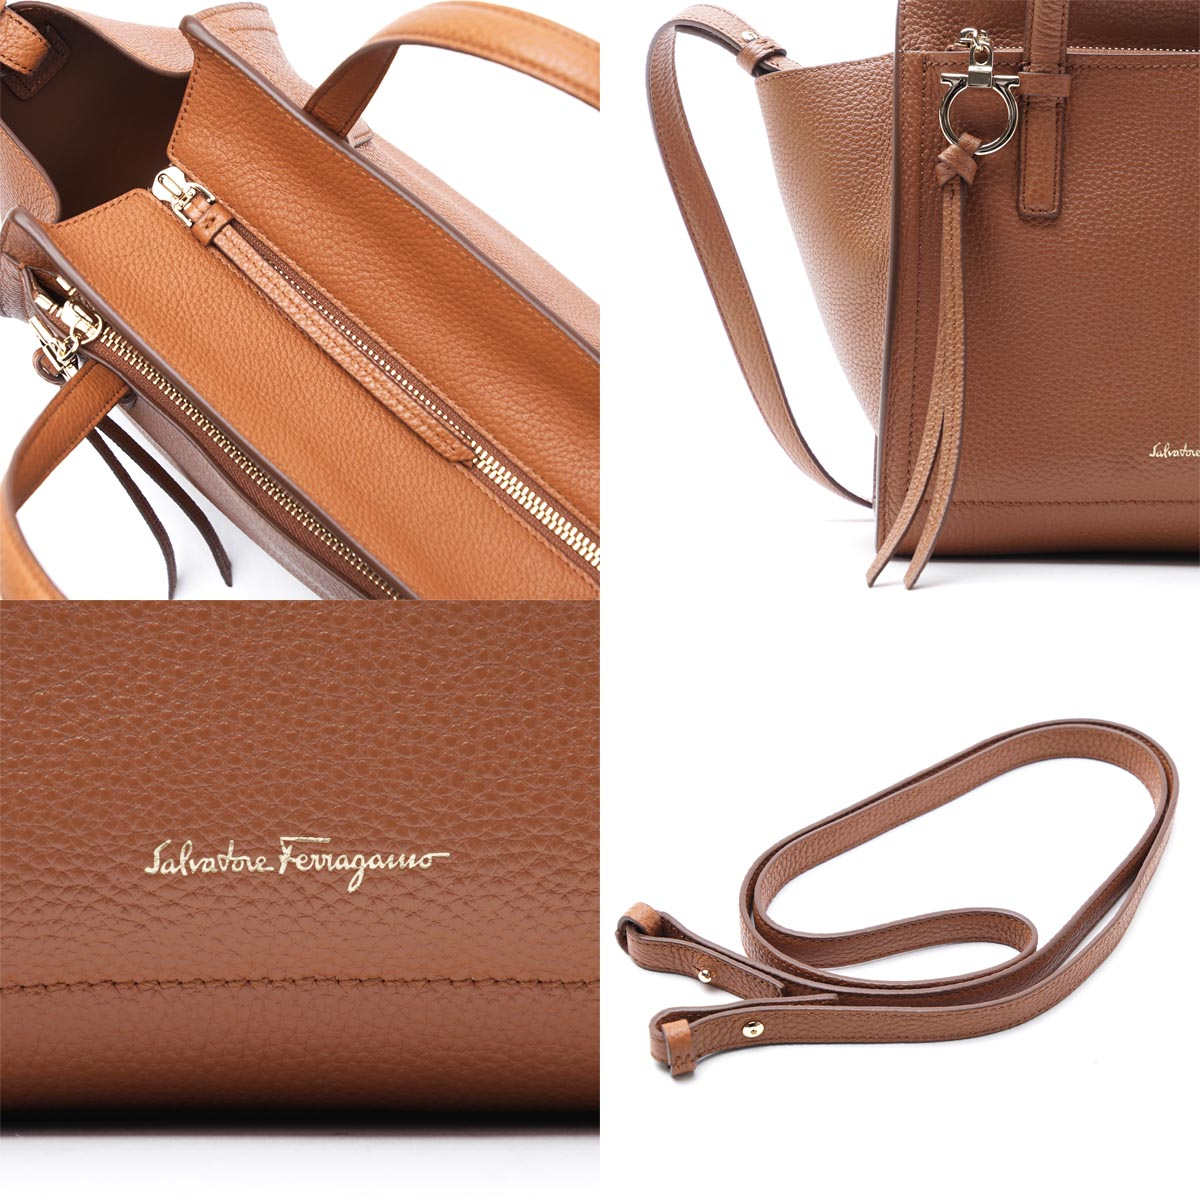 Salvatore Ferragamo Salvatore Ferragamo大手提包(2WAY式样)AMY CALF SELLA棕色派21f478 0656559女士